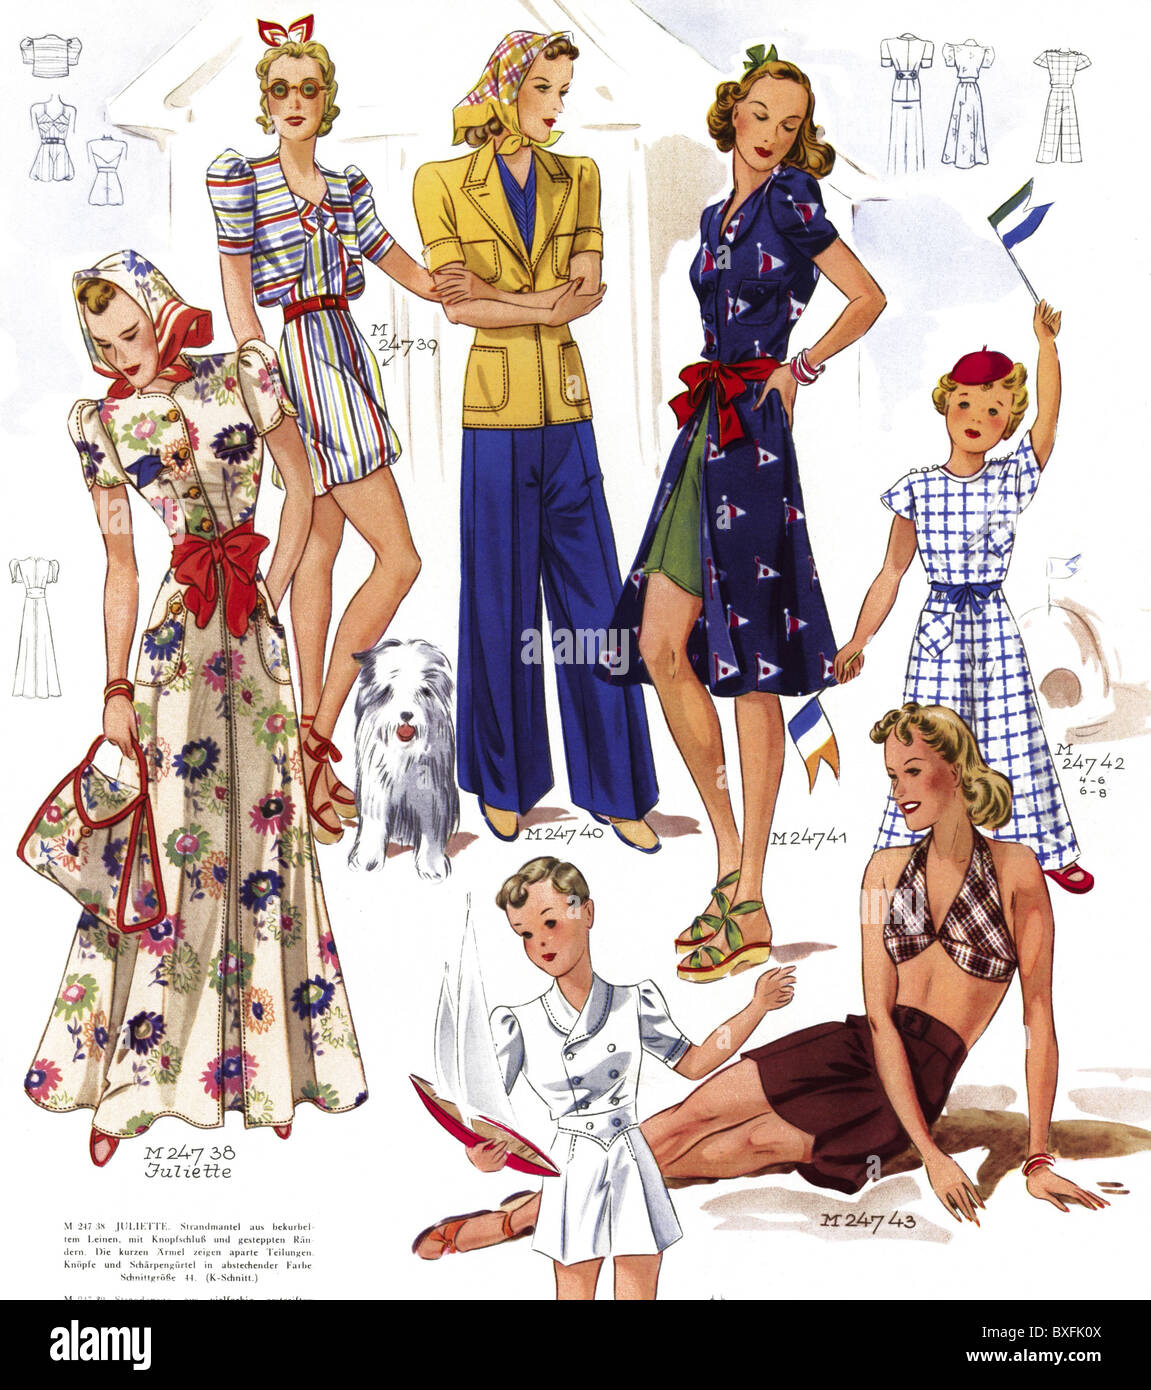 fashion 1930s beach fashion women in bathing suits pattern from stock photo 33535626 alamy. Black Bedroom Furniture Sets. Home Design Ideas